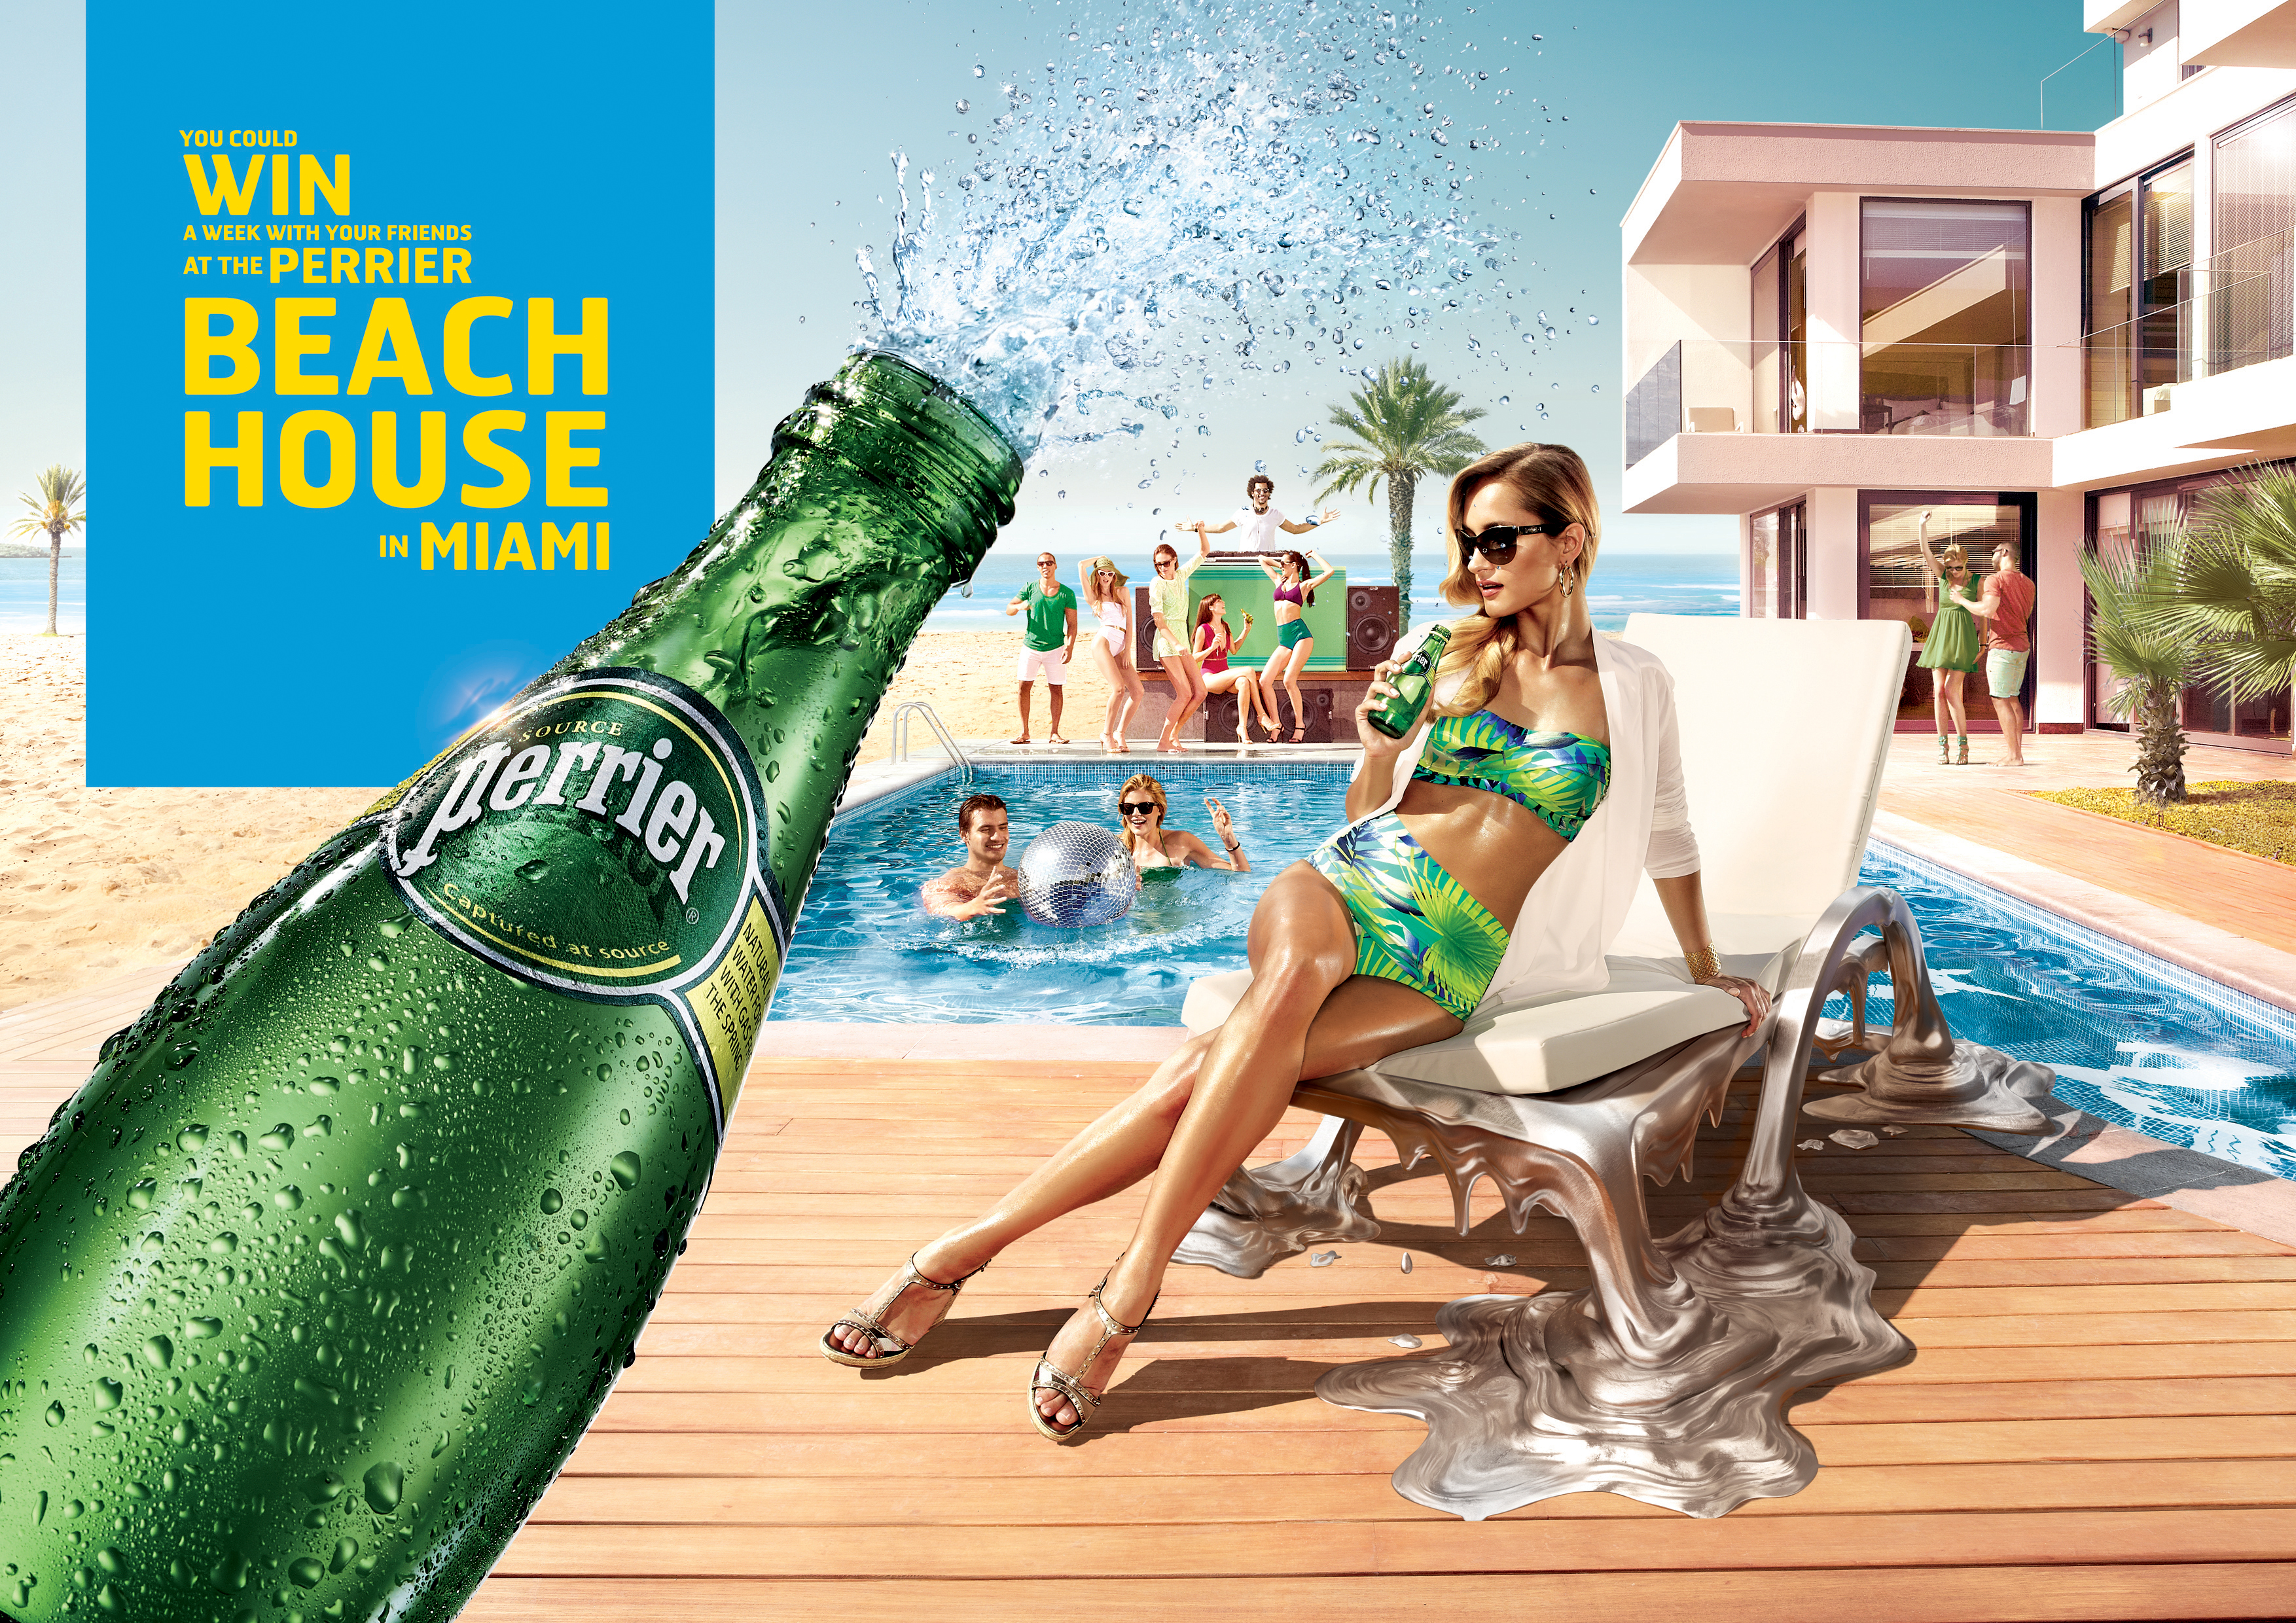 Perrier® Beach House Sweepstakes Offers the Ultimate Summer